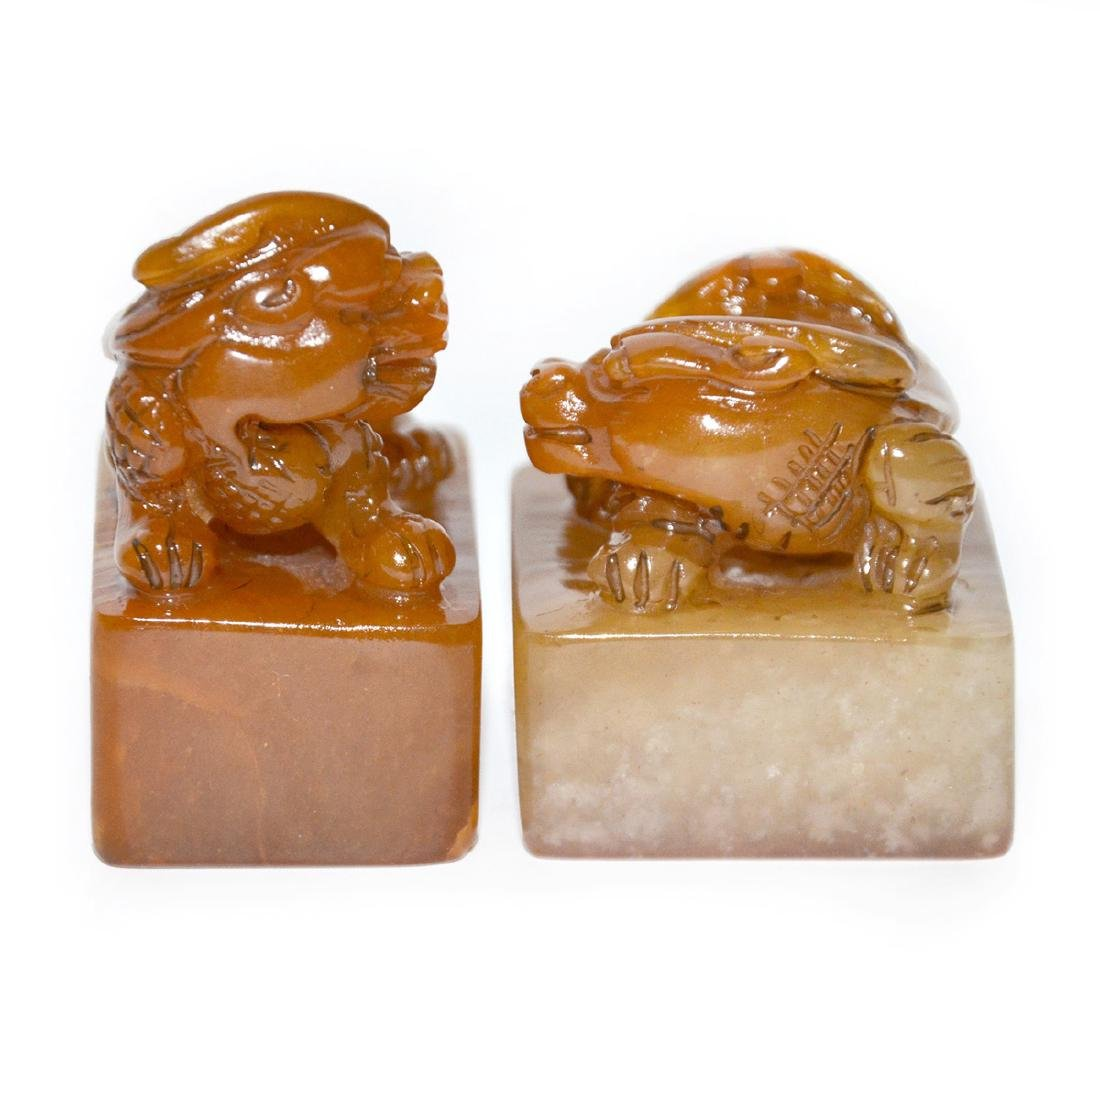 Qing Dynasty, A Pair of Tianhuang Stone Seal with - 2